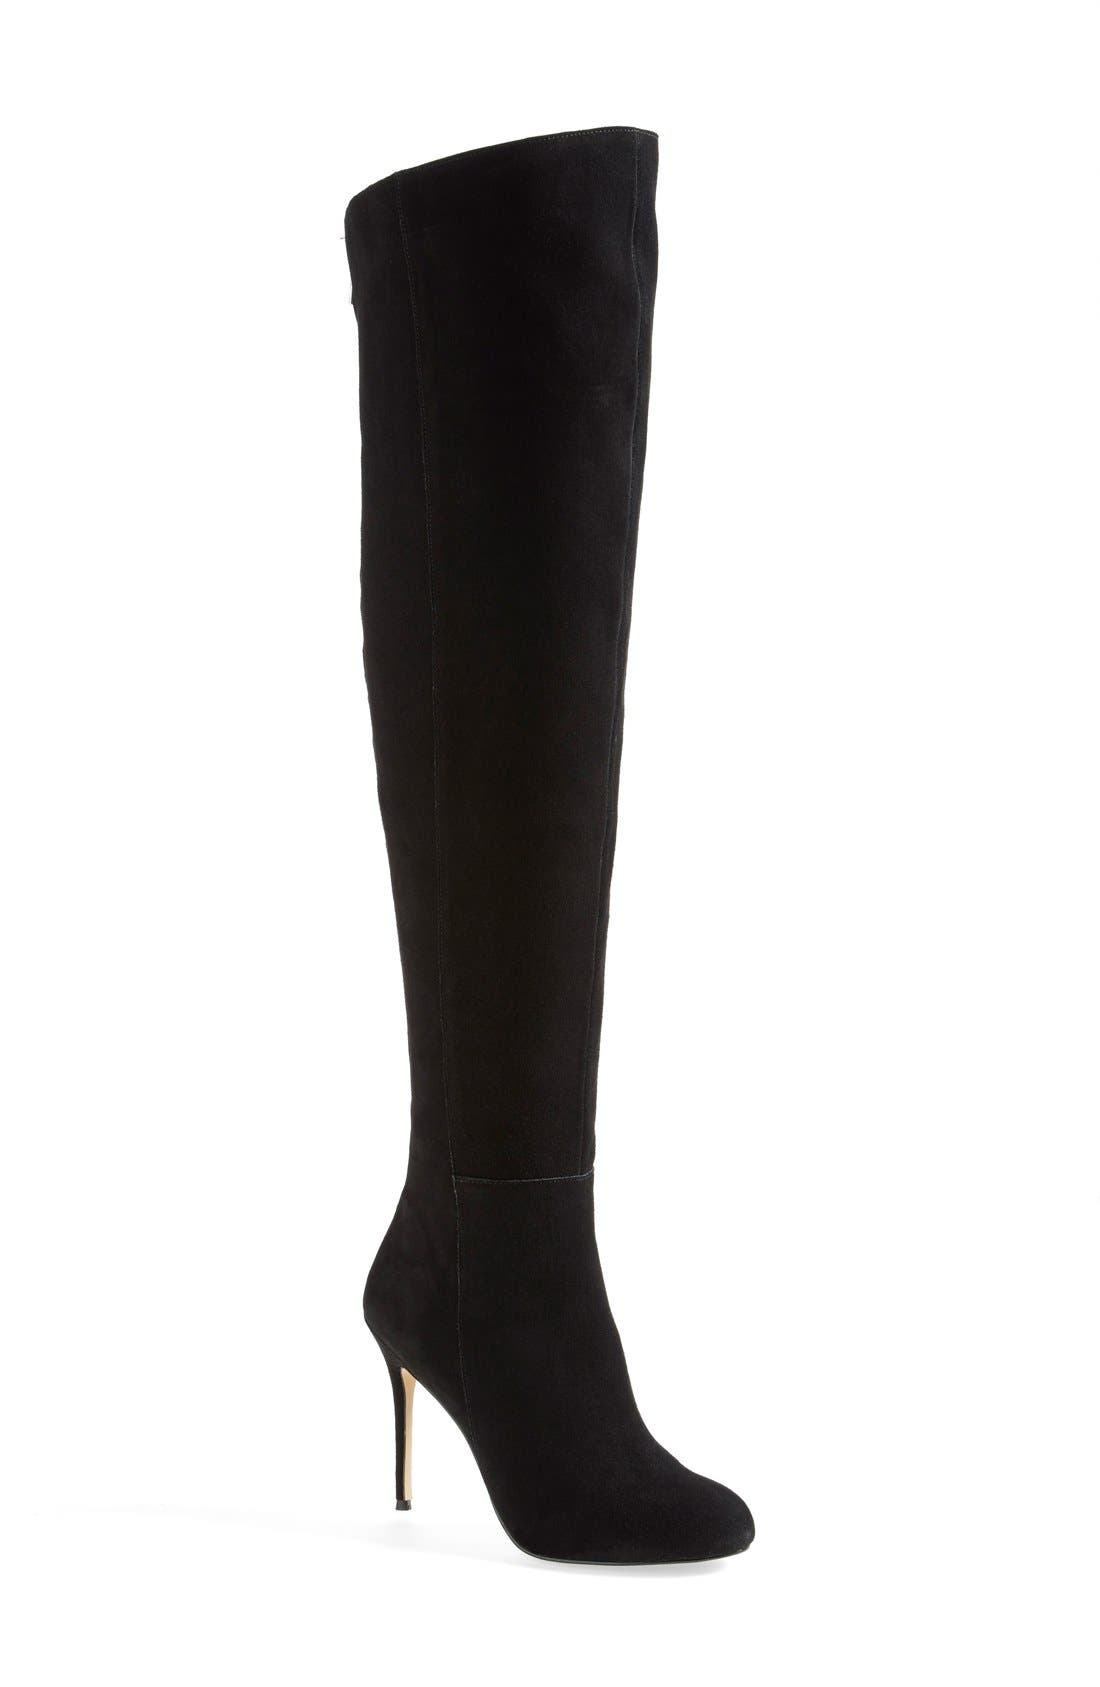 Main Image - DV by Dolce Vita 'Keva' Over-The-Knee Boot (Women)